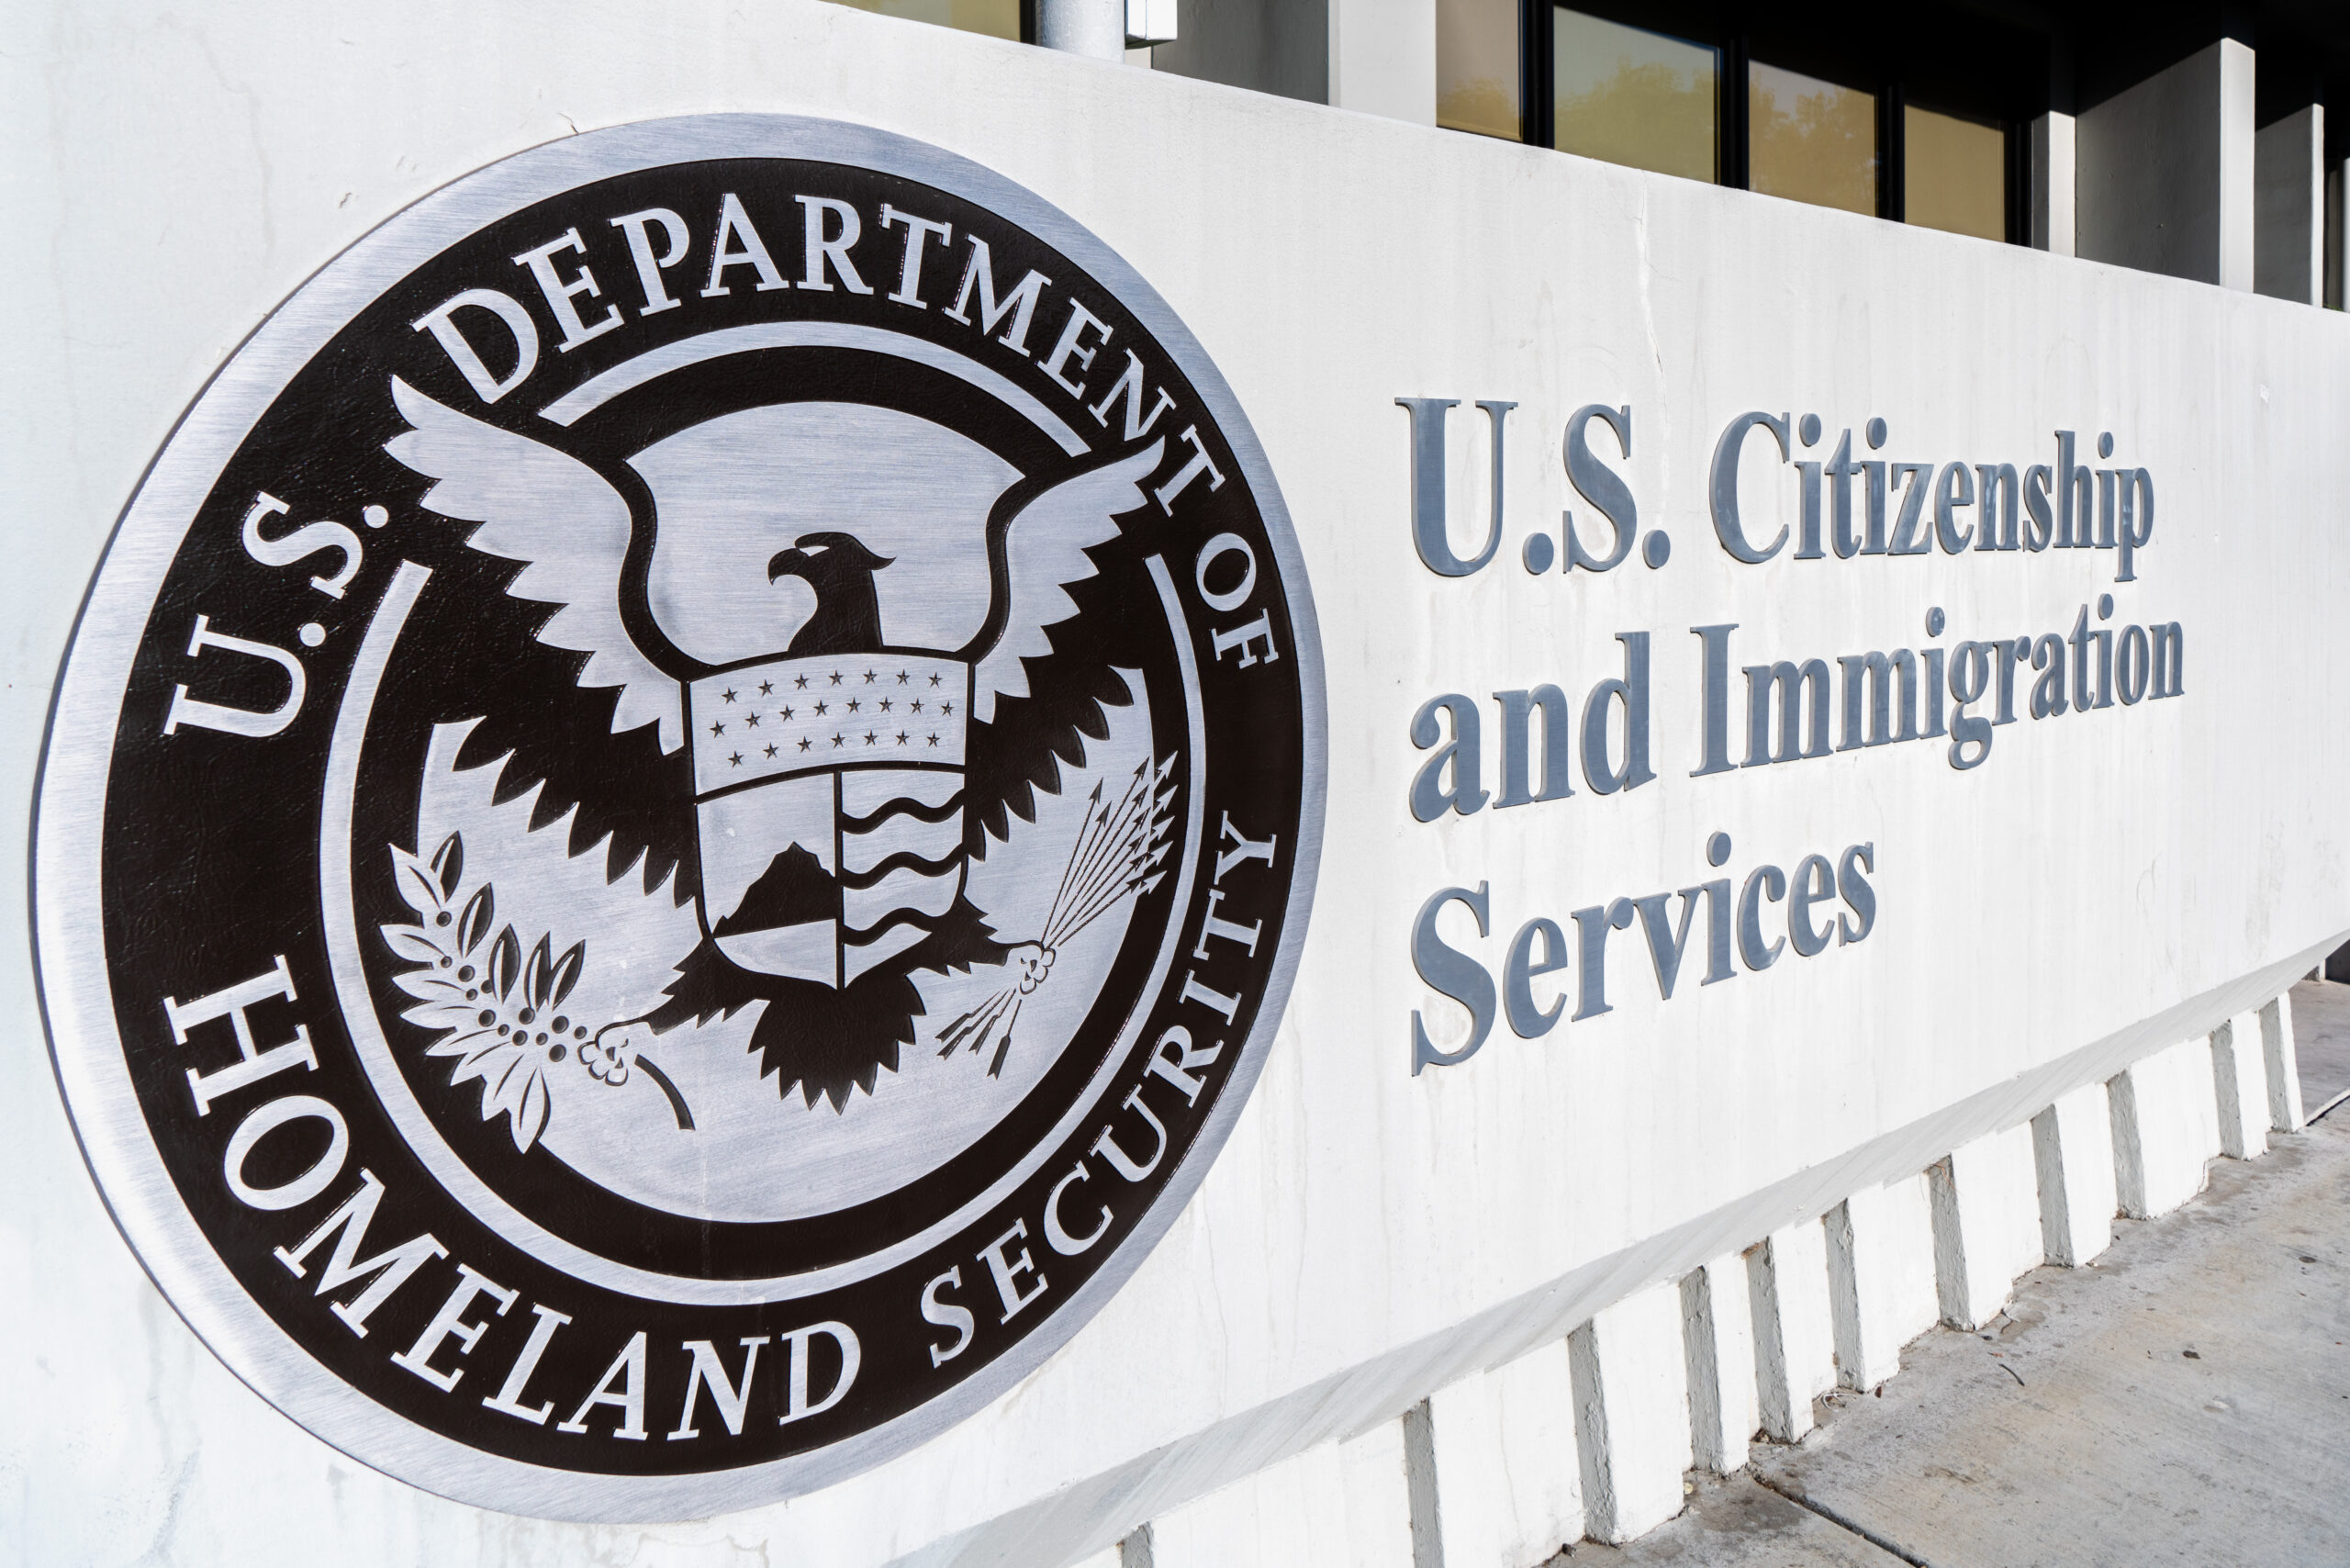 US Citizenship and Immigration Services (USCIS Building)